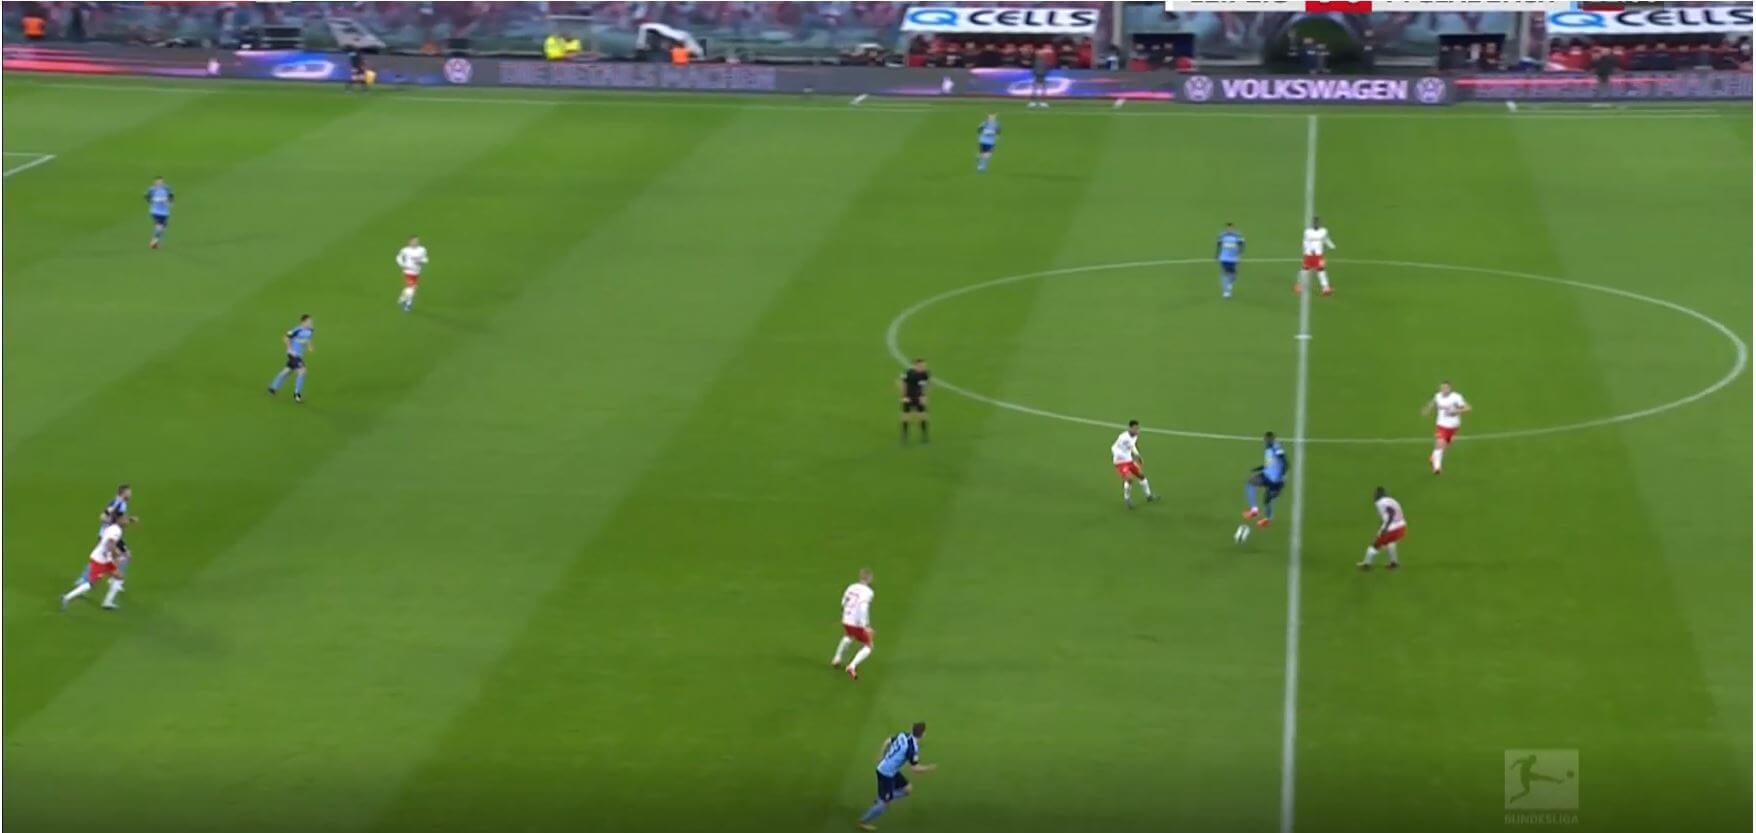 Bundesliga 2019/20: RB Leipizig vs Borussia Monchengladbach- tactical analysis tactics